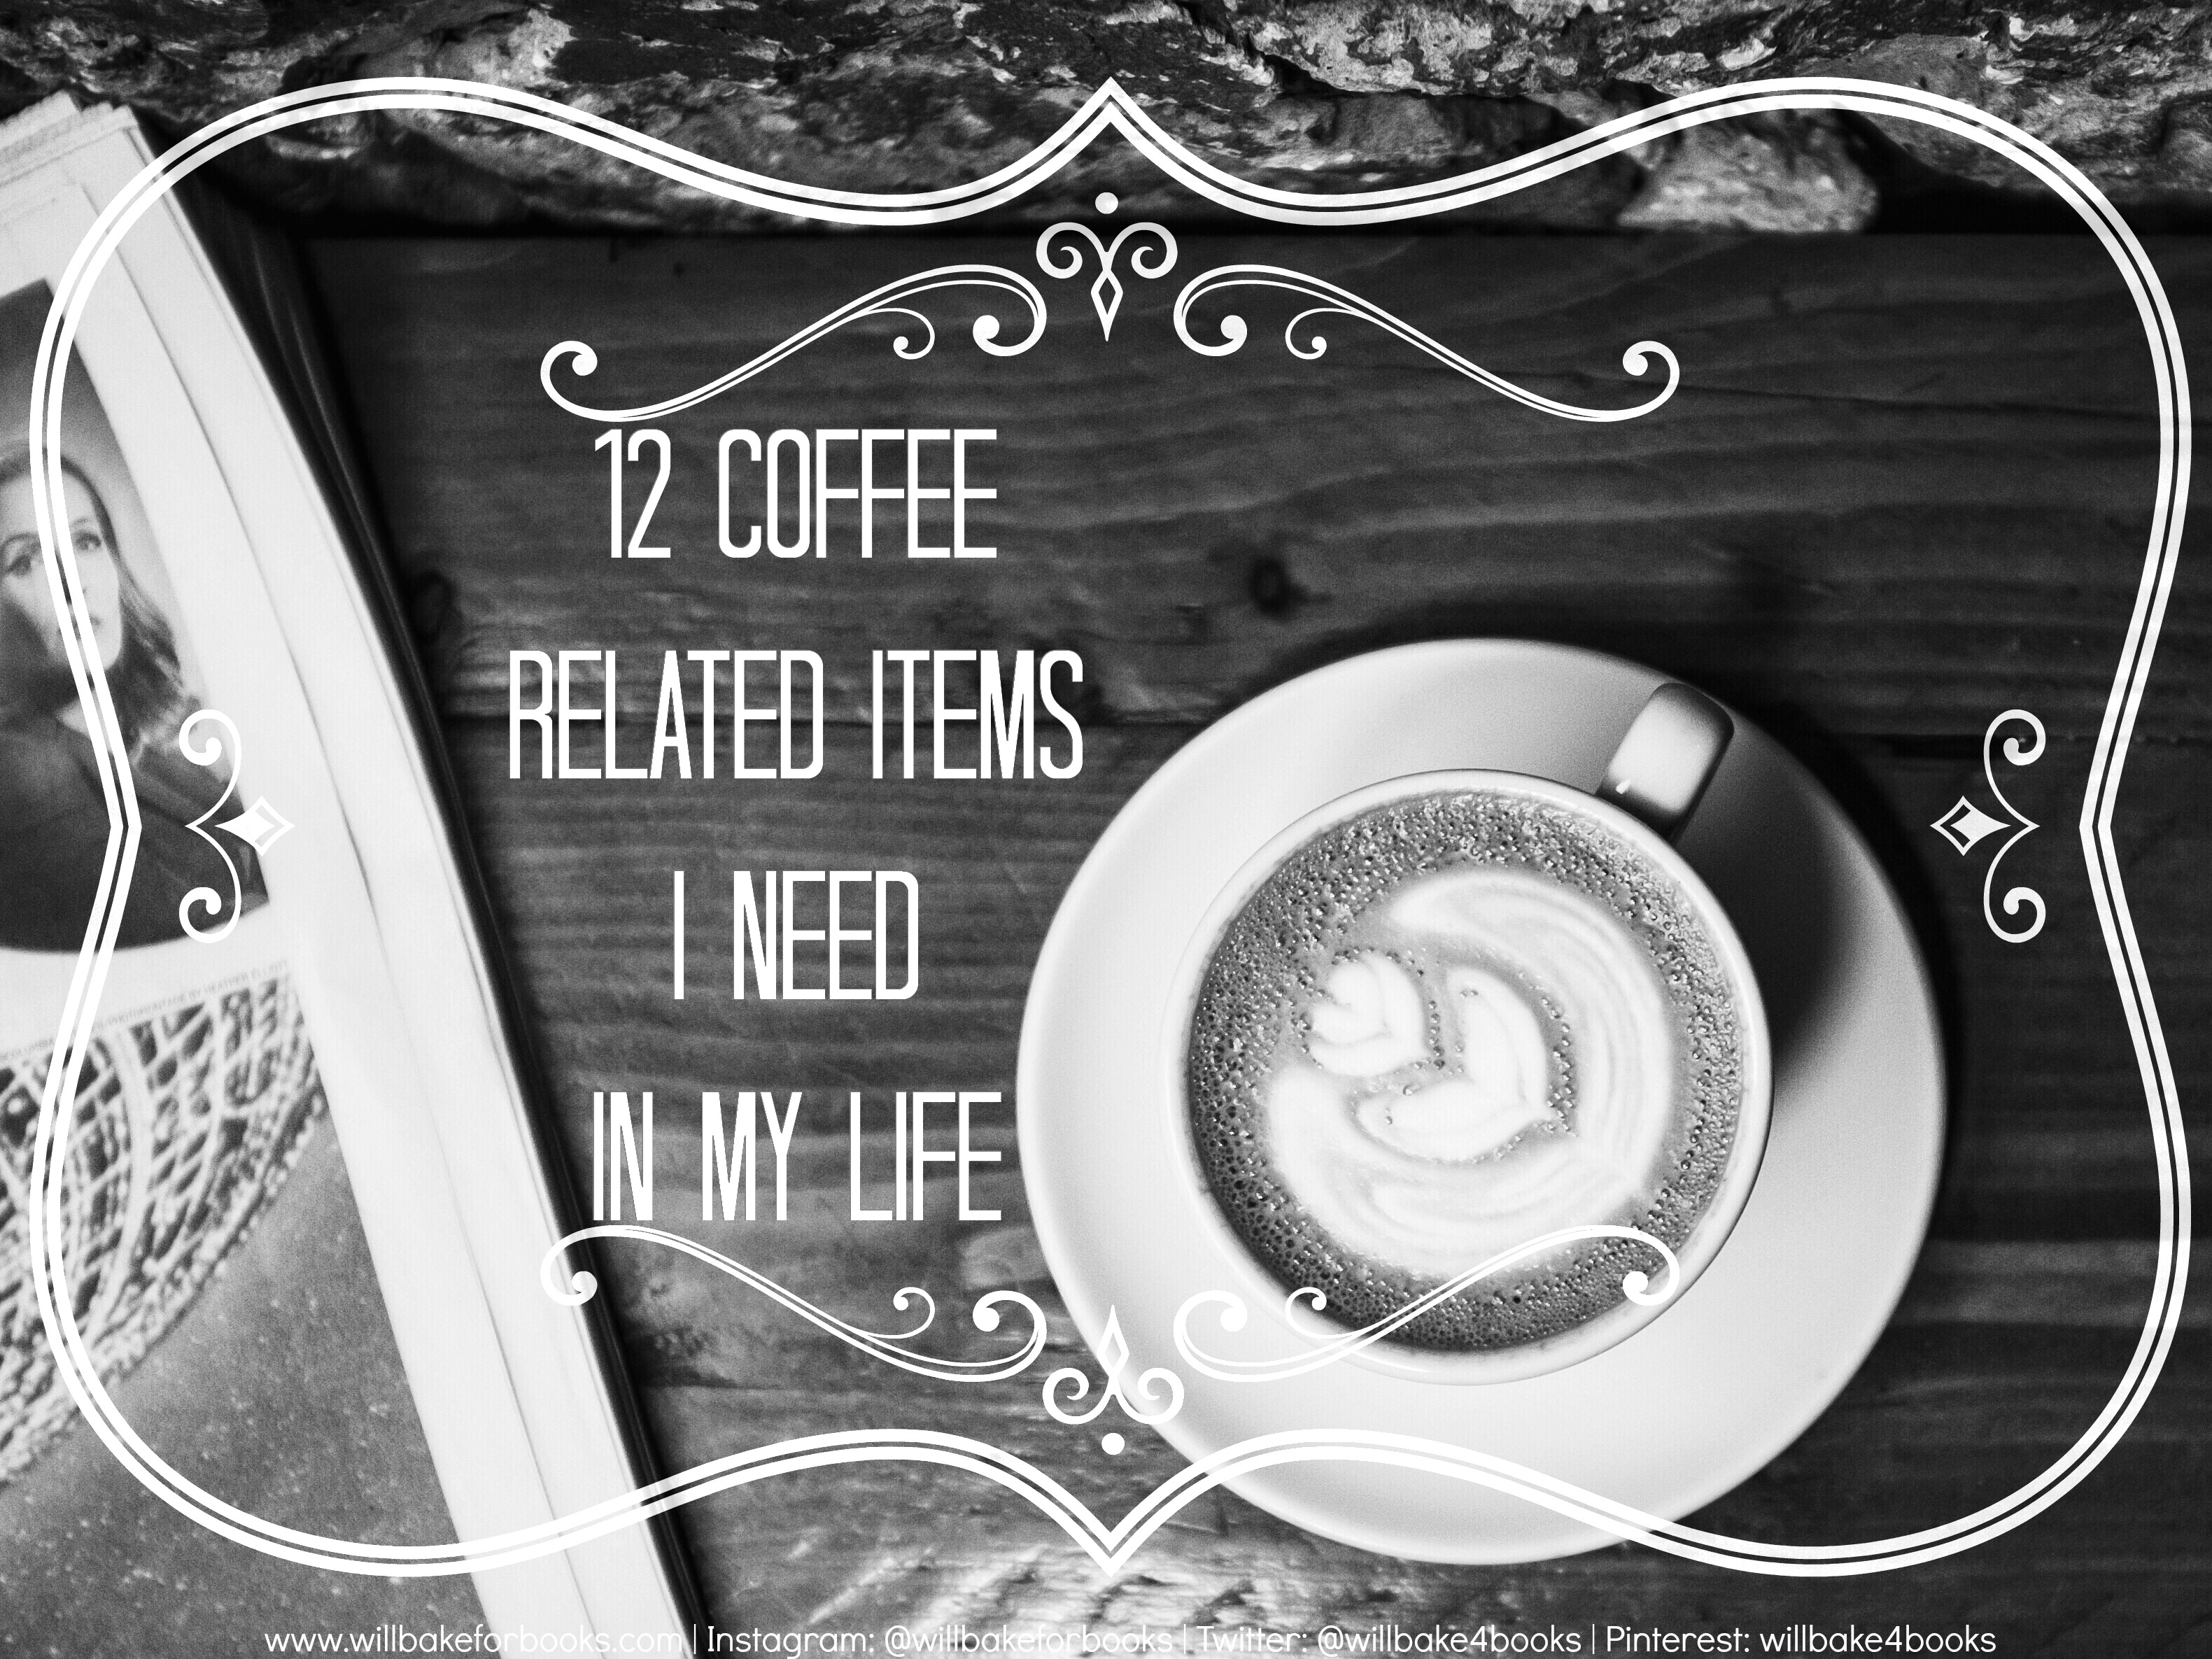 12 Coffee Related Items I Need in My Life | www.willbakeforbooks.com